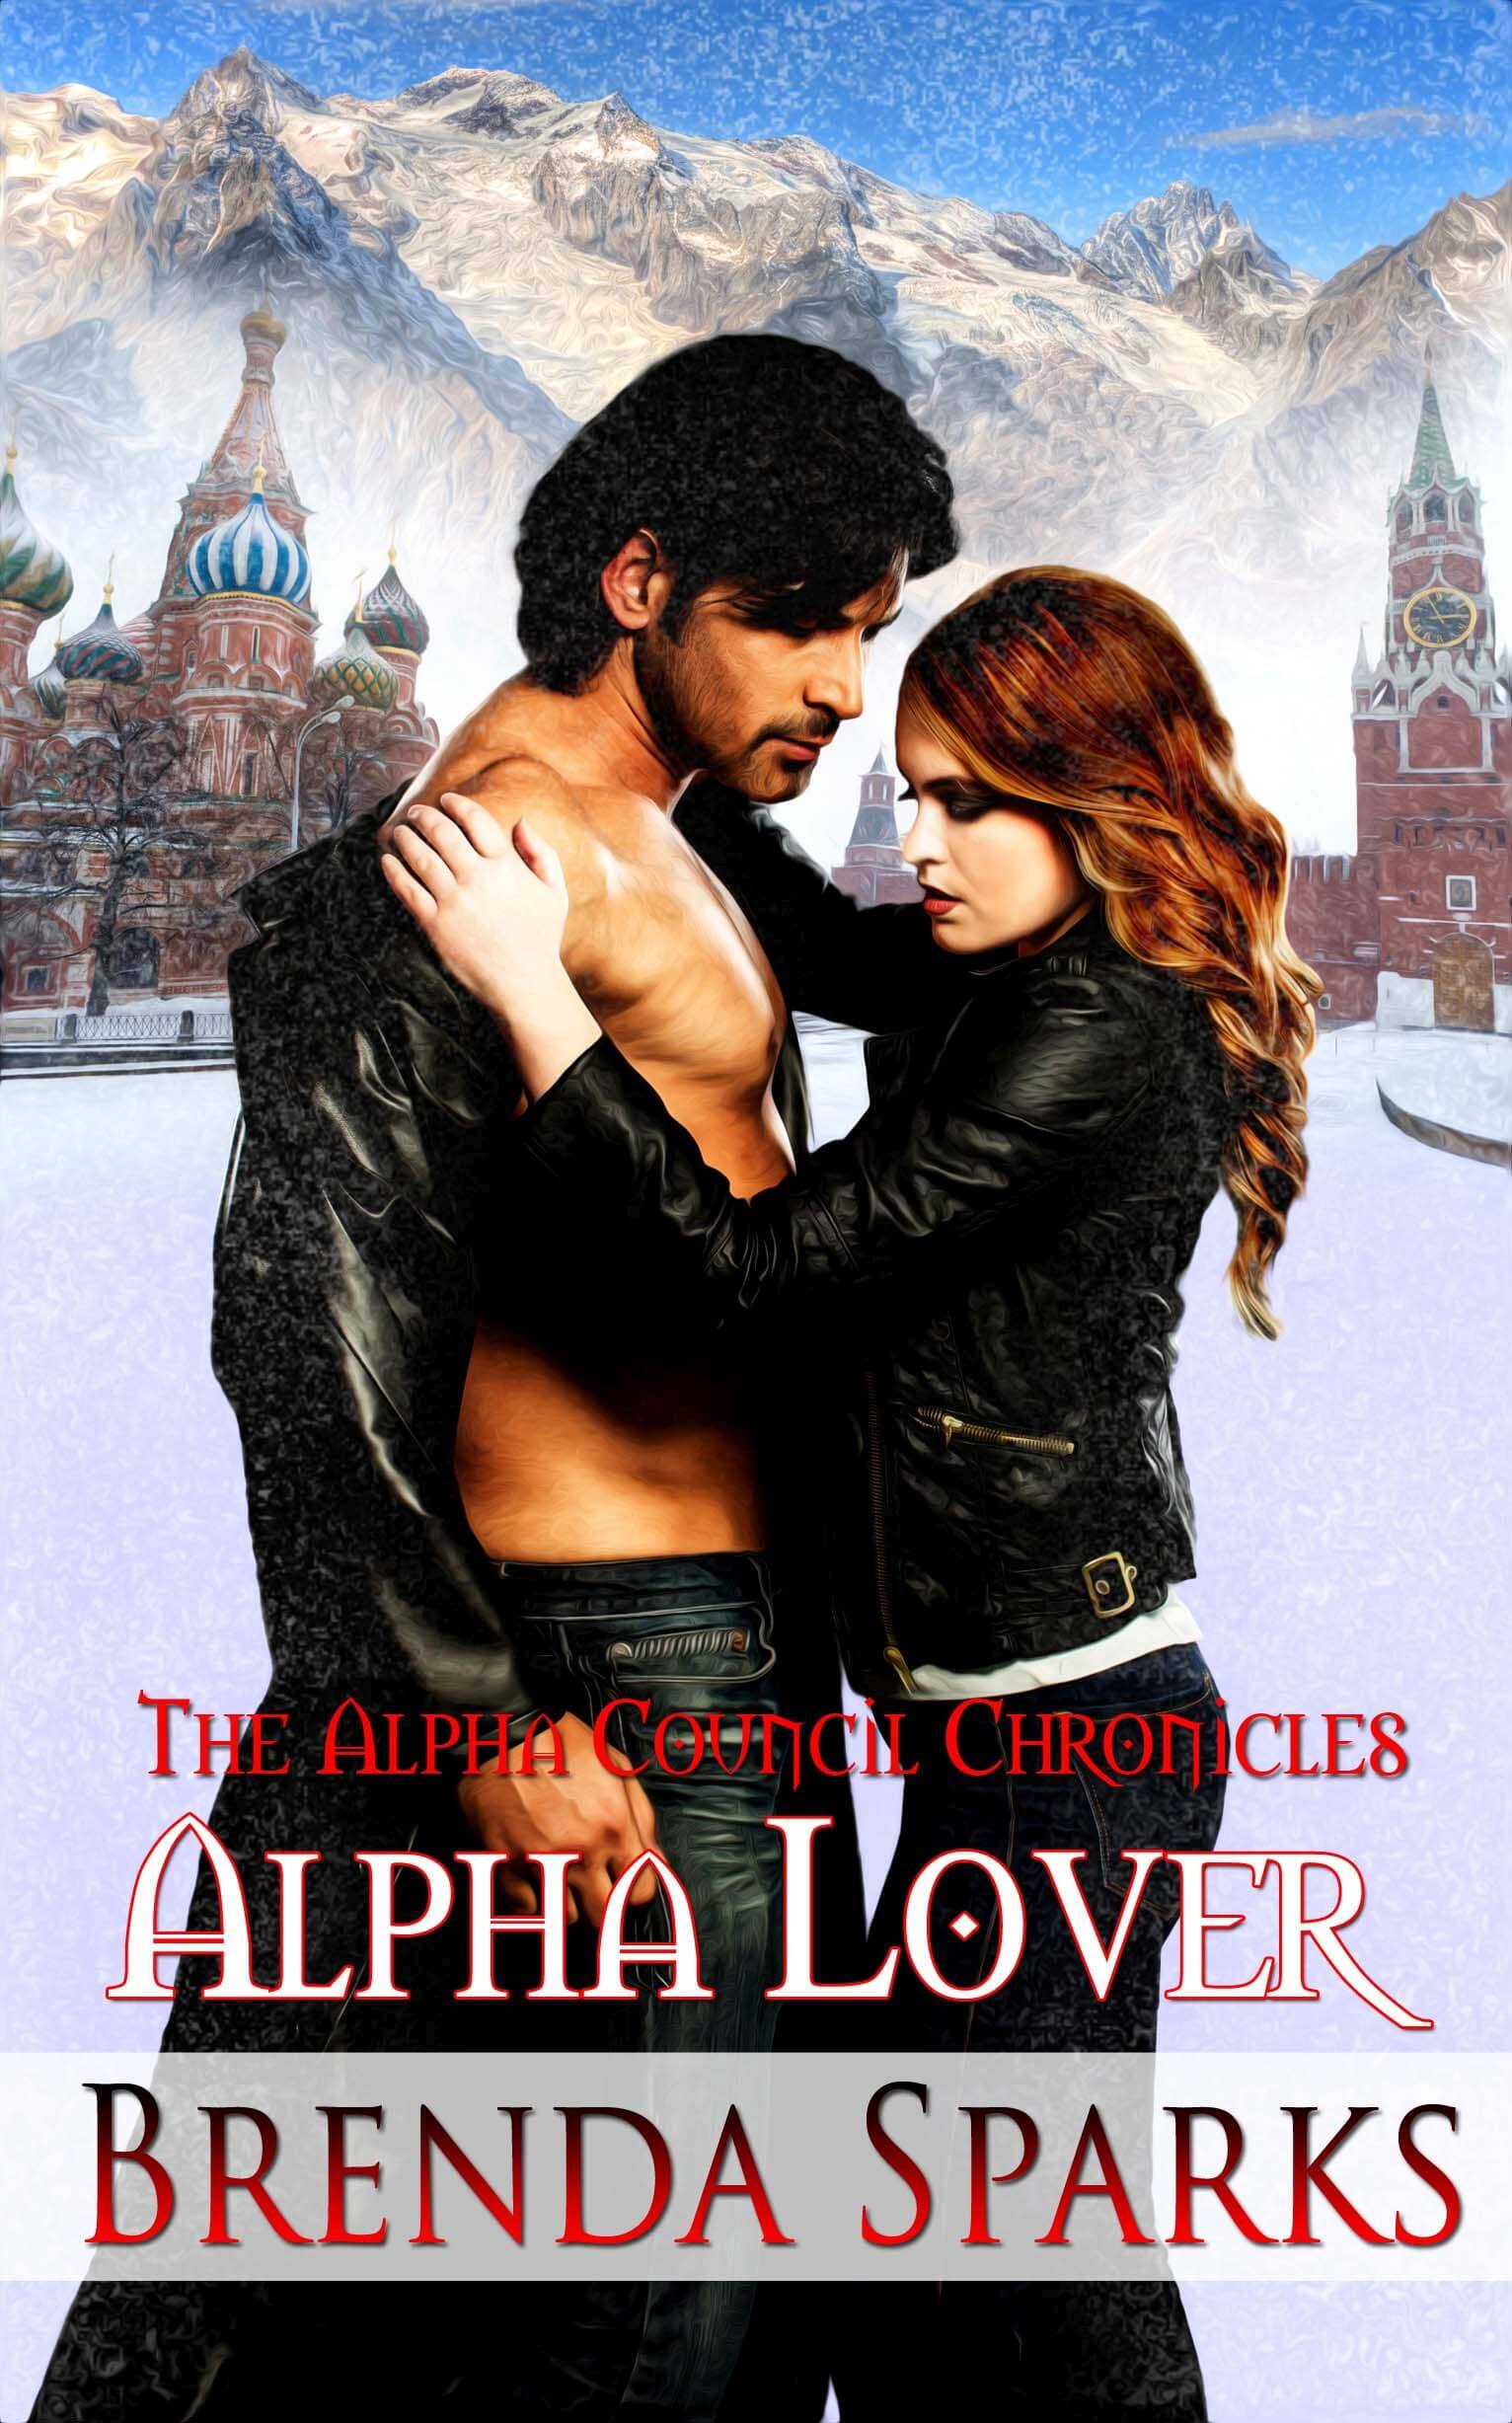 Showing some #AuthorLove for a Hot Paranormal #Romance, Alpha Lover, by Brenda Sparks